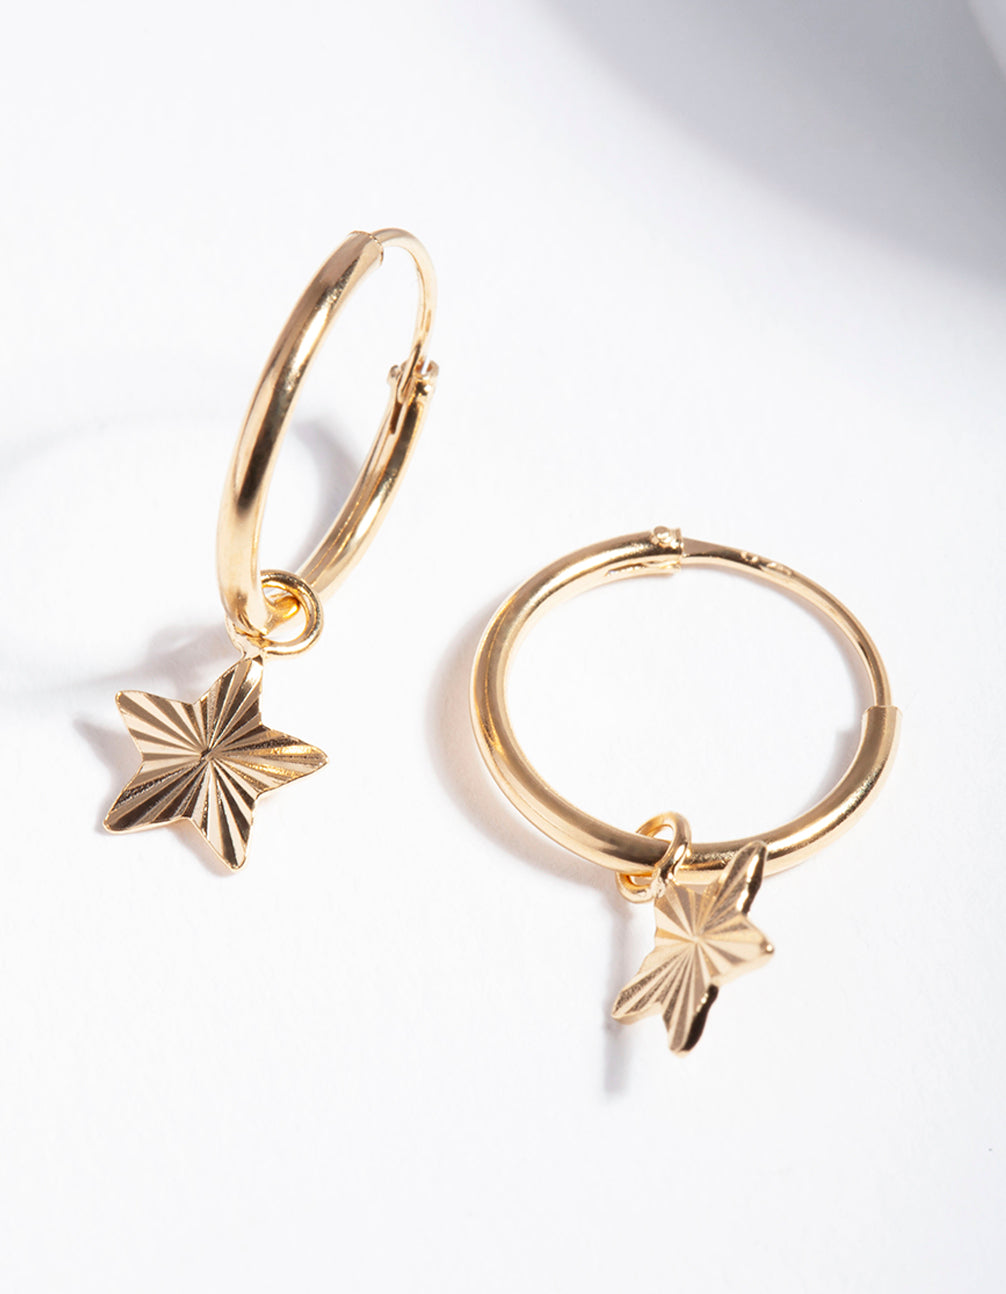 Gold Plated Sterling Silver Textured Star Hoop Earrings